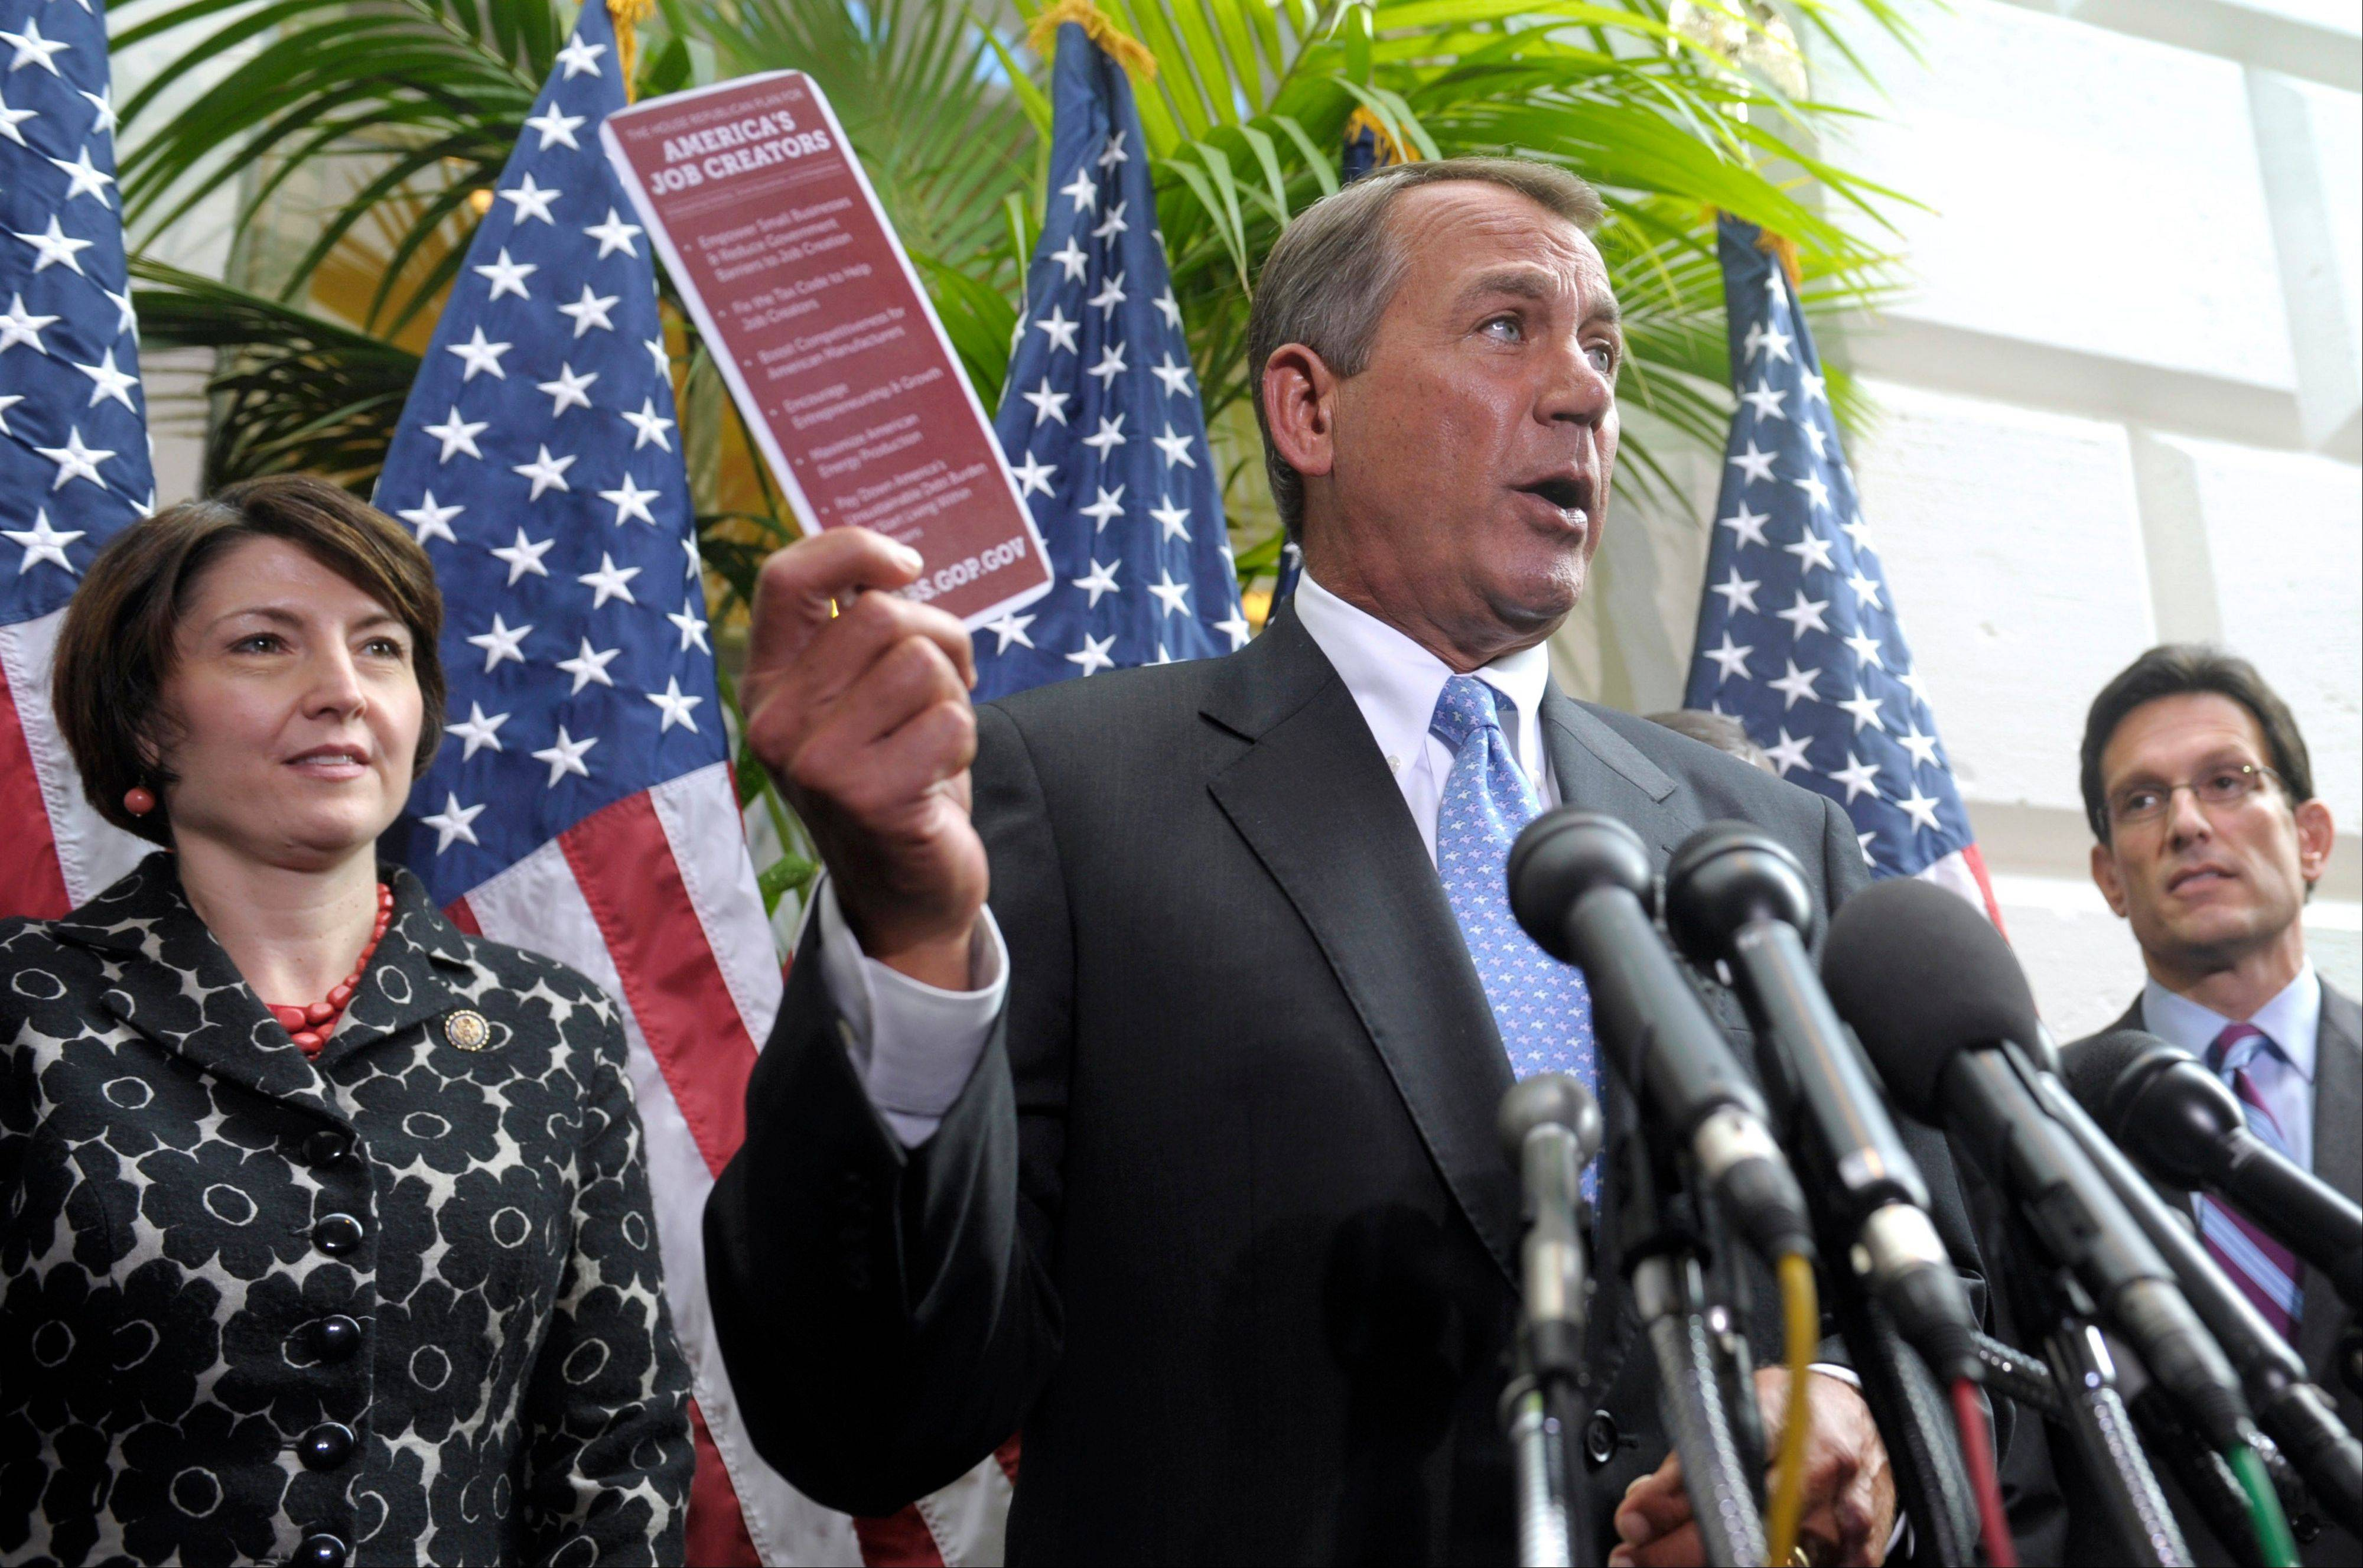 In this photo from November 2011, Rep. Cathy McMorris Rodgers is seen at left as House Speaker John Boehner speaks and House Majority Leader Eric Cantor listens. Rodgers was voted to the No. 4 leadership position among House Republicans on Wednesday.